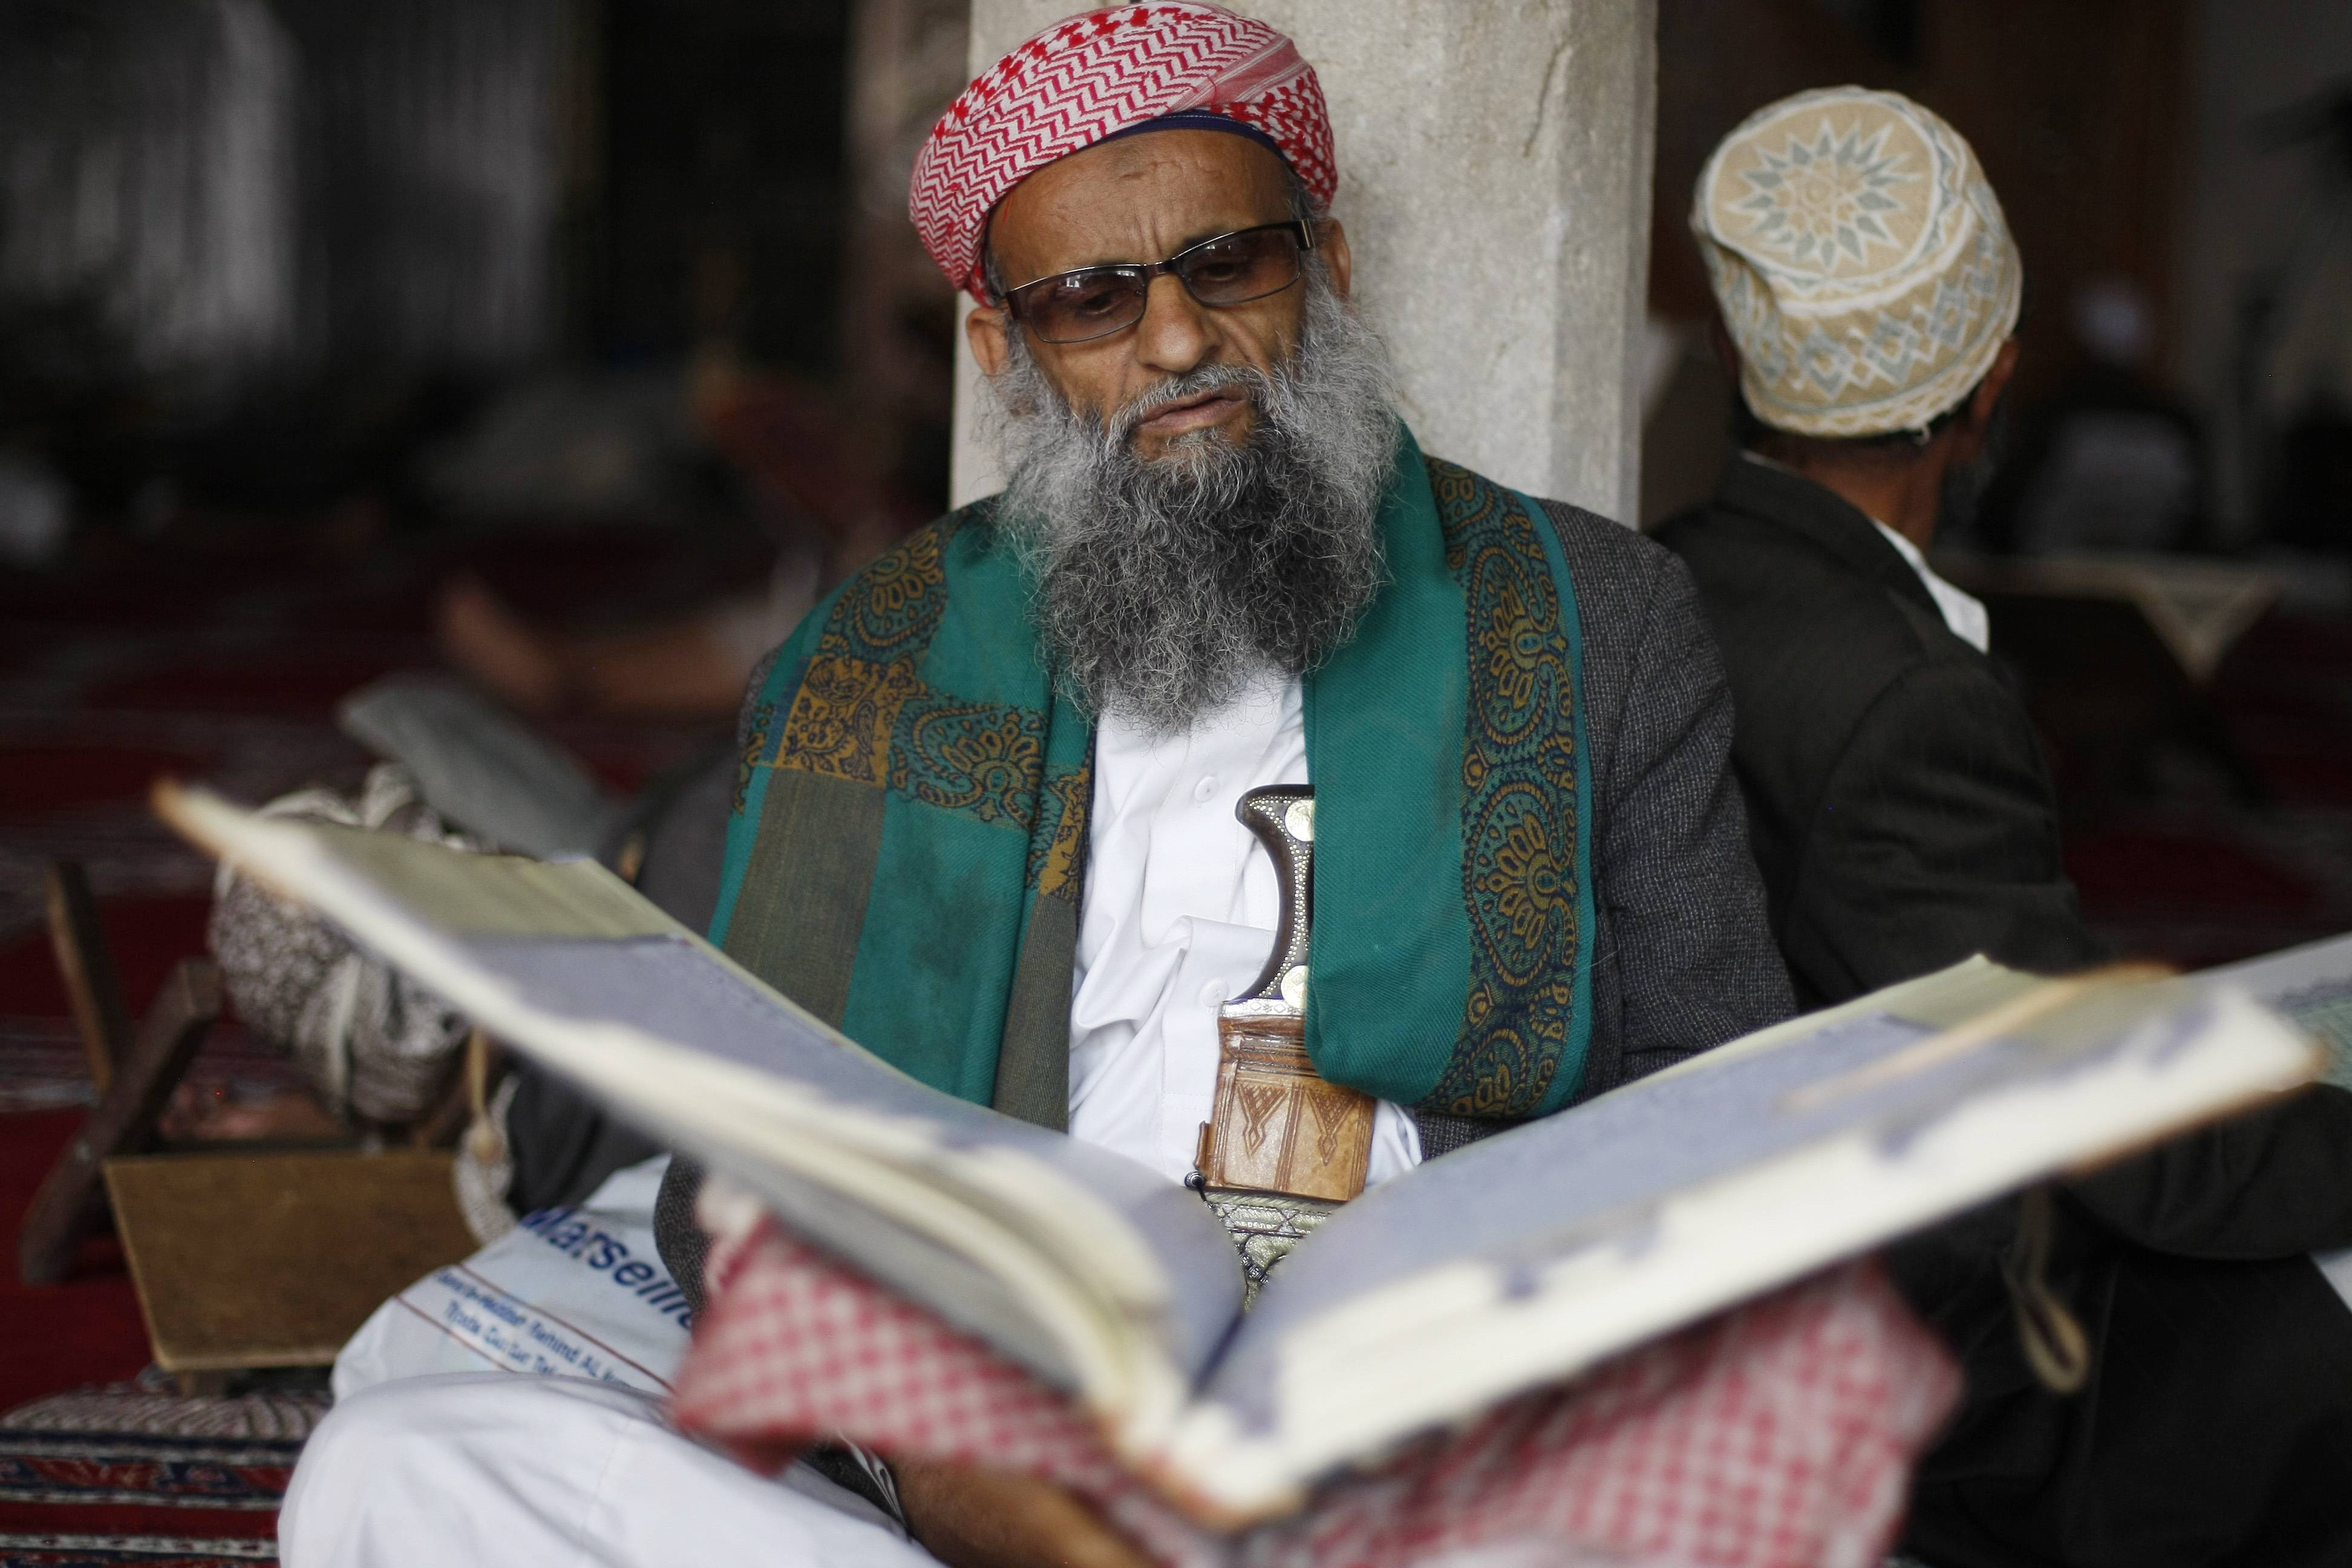 An elderly man reads verses of the Quran, Islam's holy book, on Saturday, the first day of the holy month of Ramadan, in the Grand Mosque in the Old City of Sanaa, Yemen.